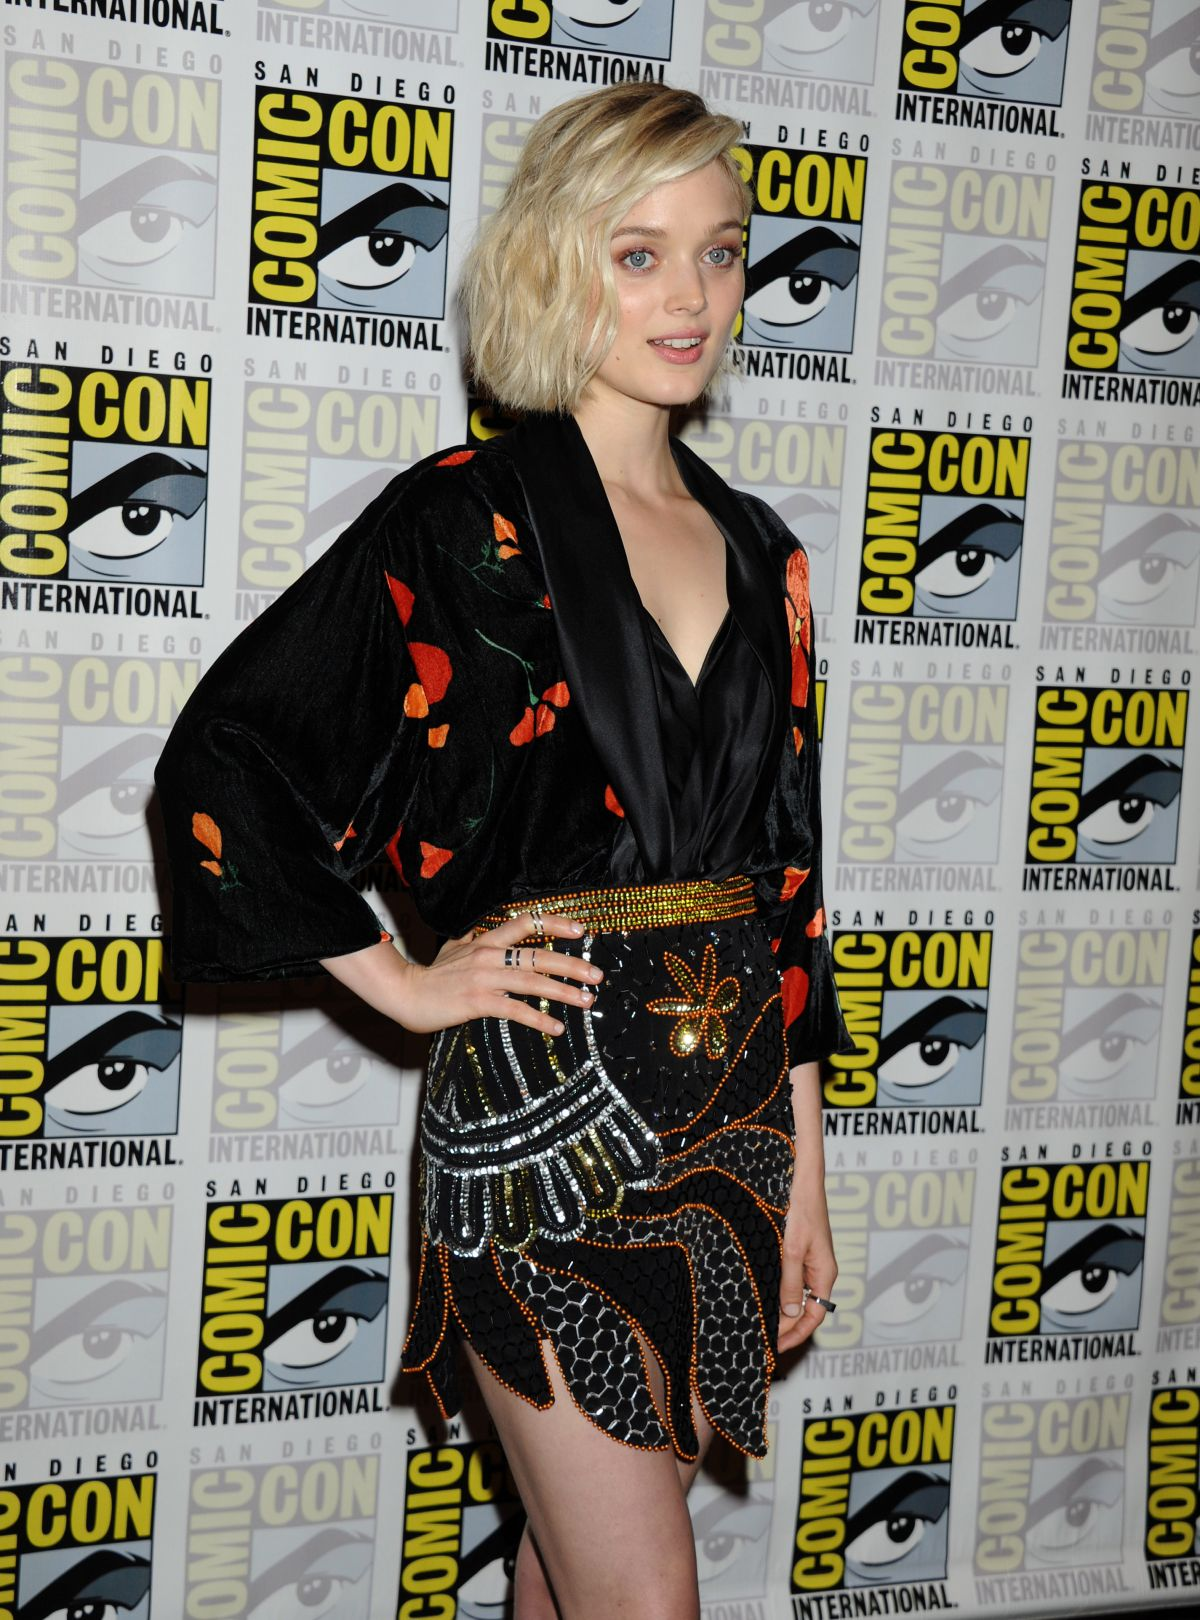 BELLA HEATHCOTE at Pride and Prejudice and Zombies Panel at Comic-con in San Diego